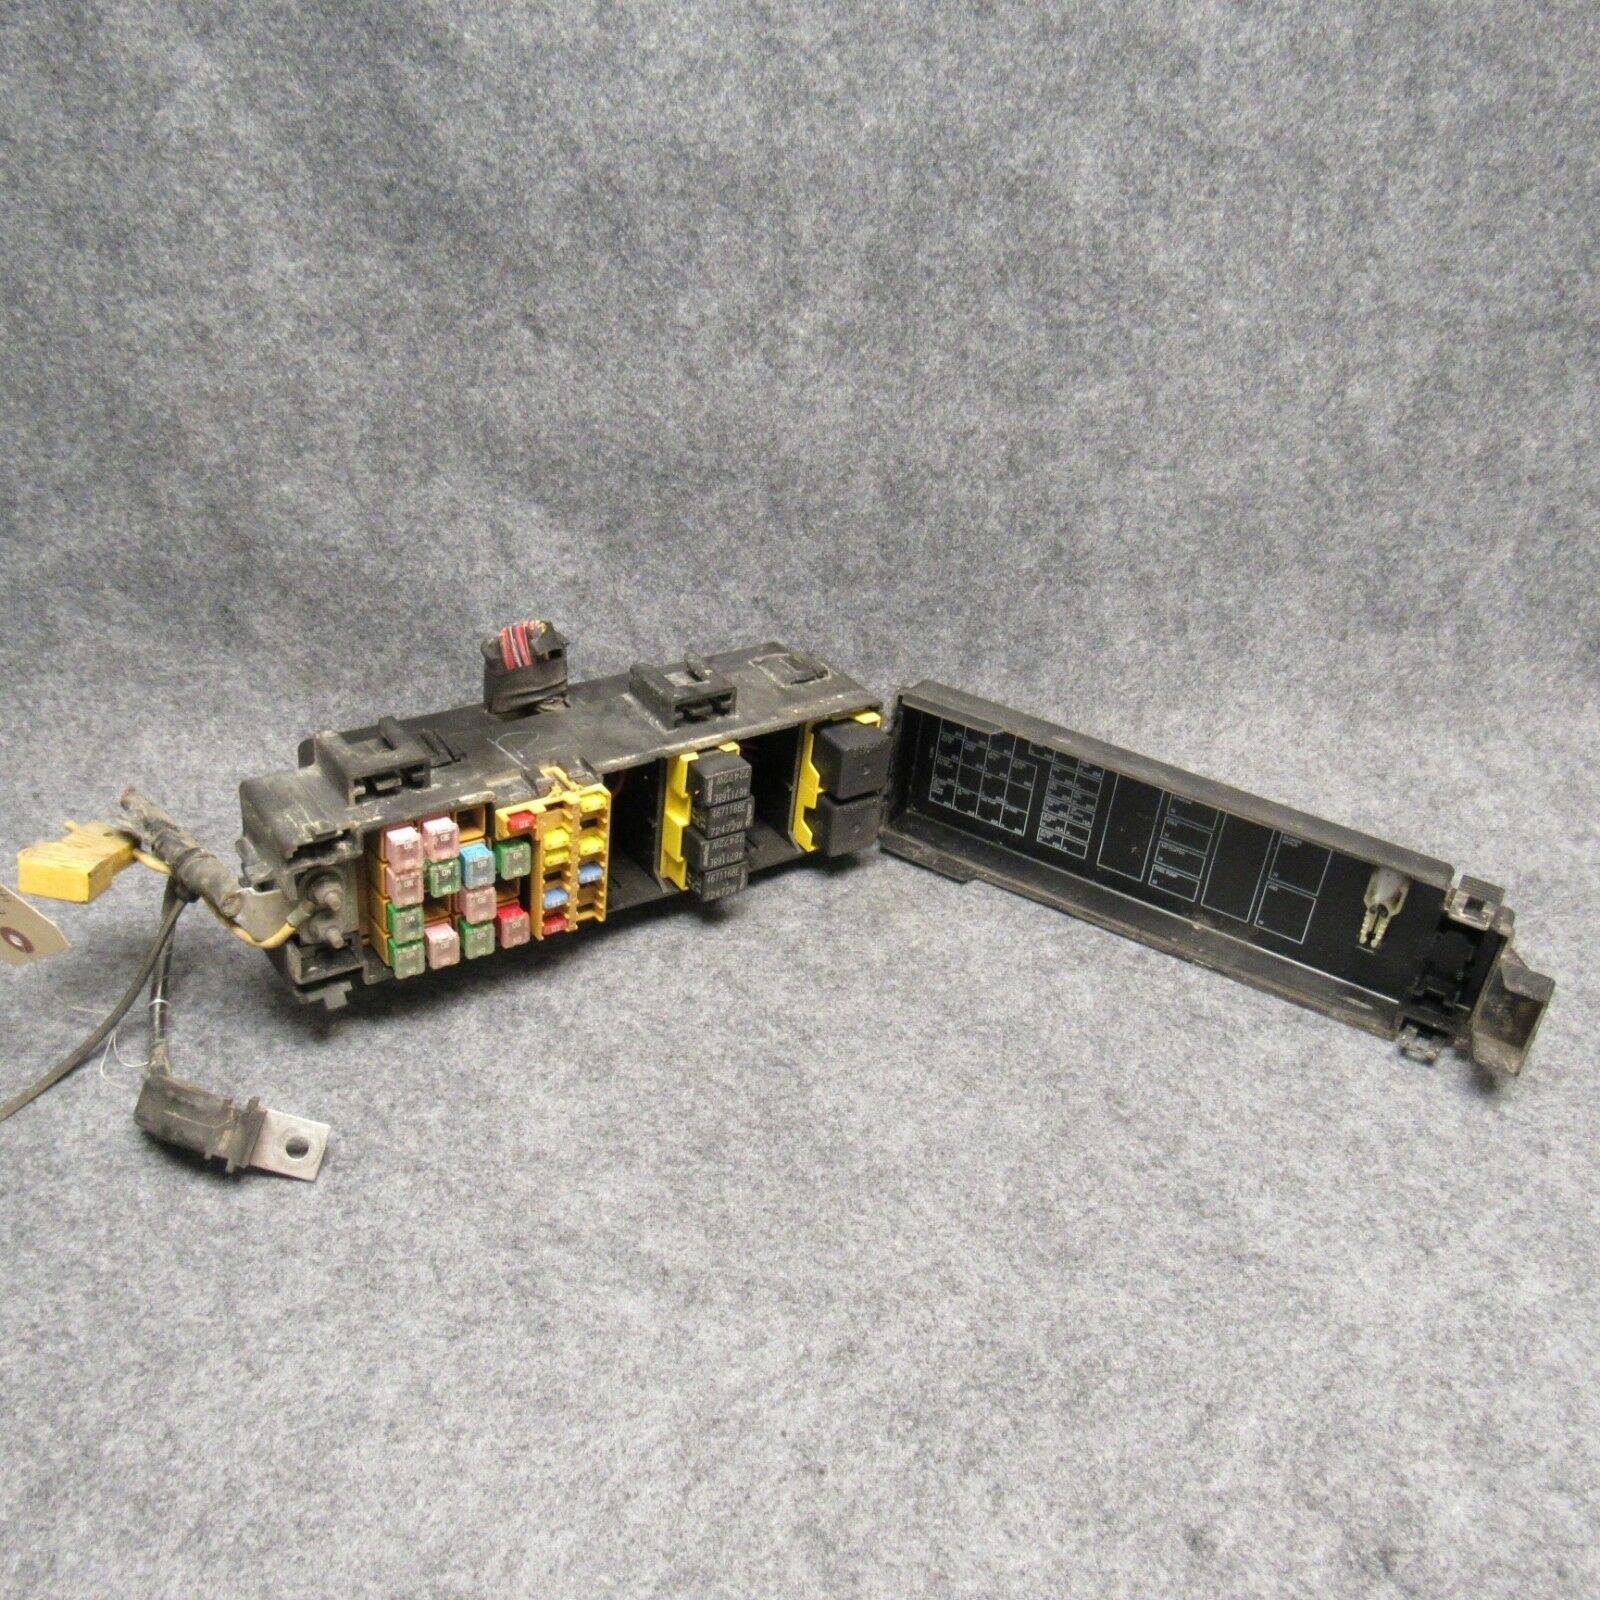 2005 Dodge Durango 47 Underhood Main Fuse Box Relay Center Oem 1 Of 1only Available